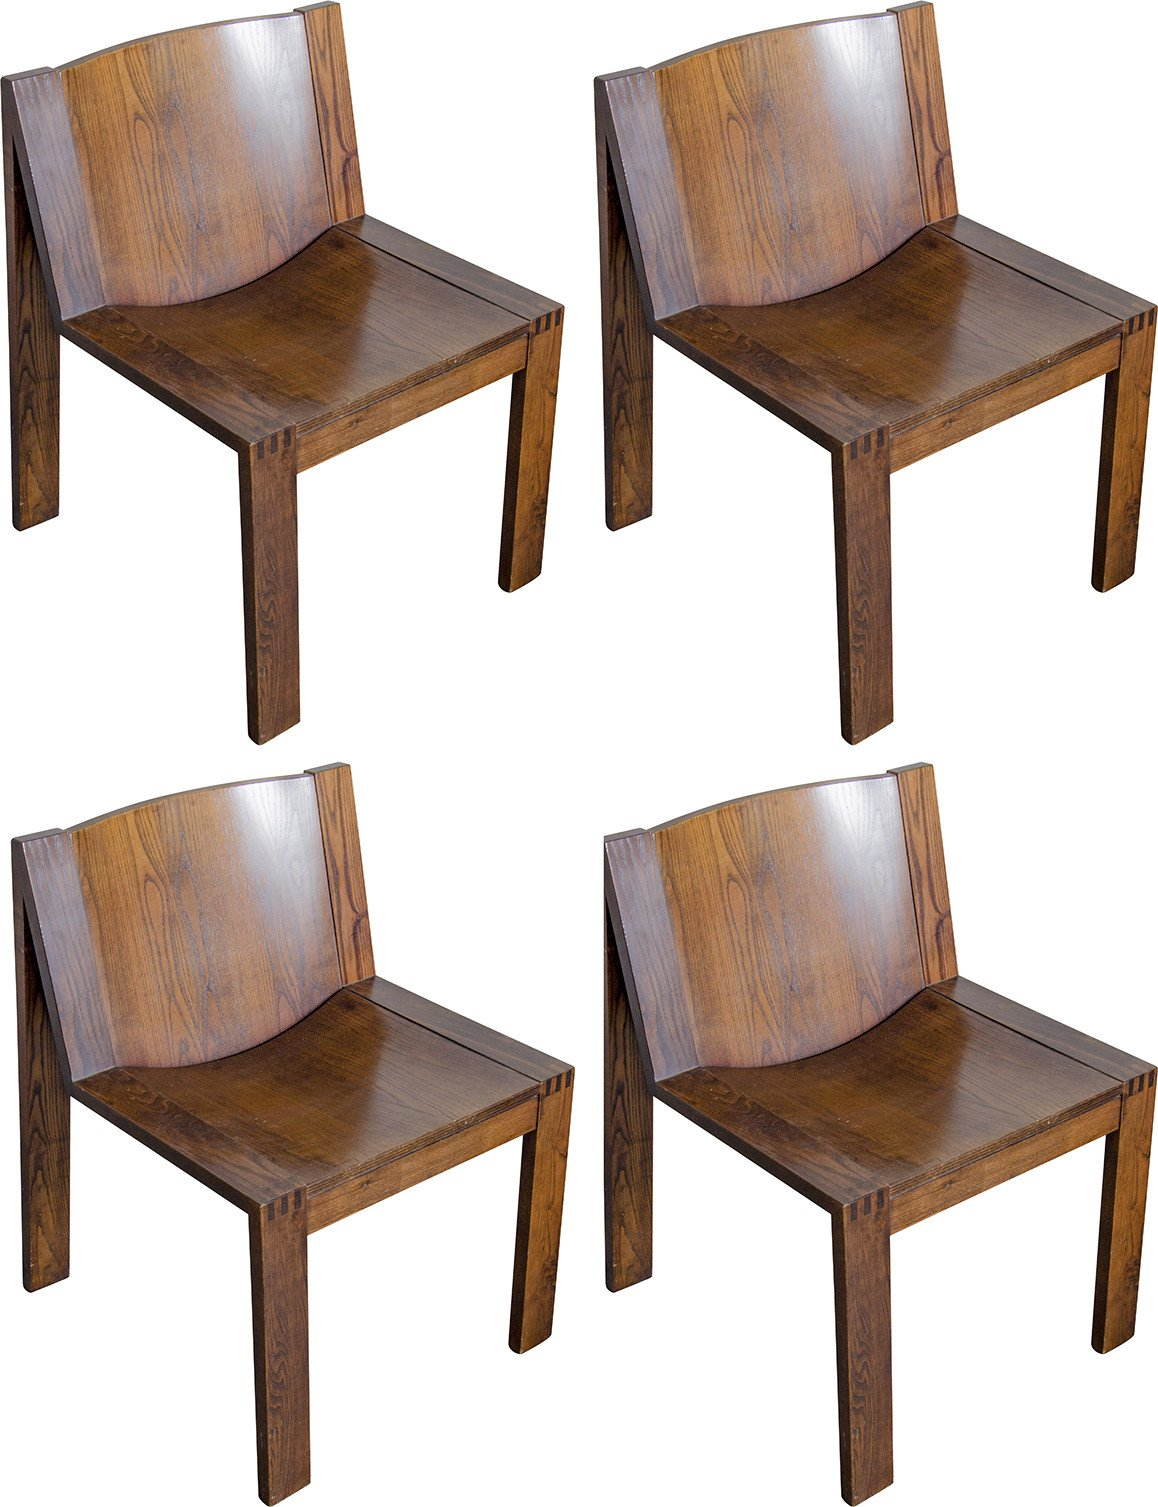 Set of Four Chairs by P. Mazairac and K. Boonzaaijer, Pastoe, 1970s